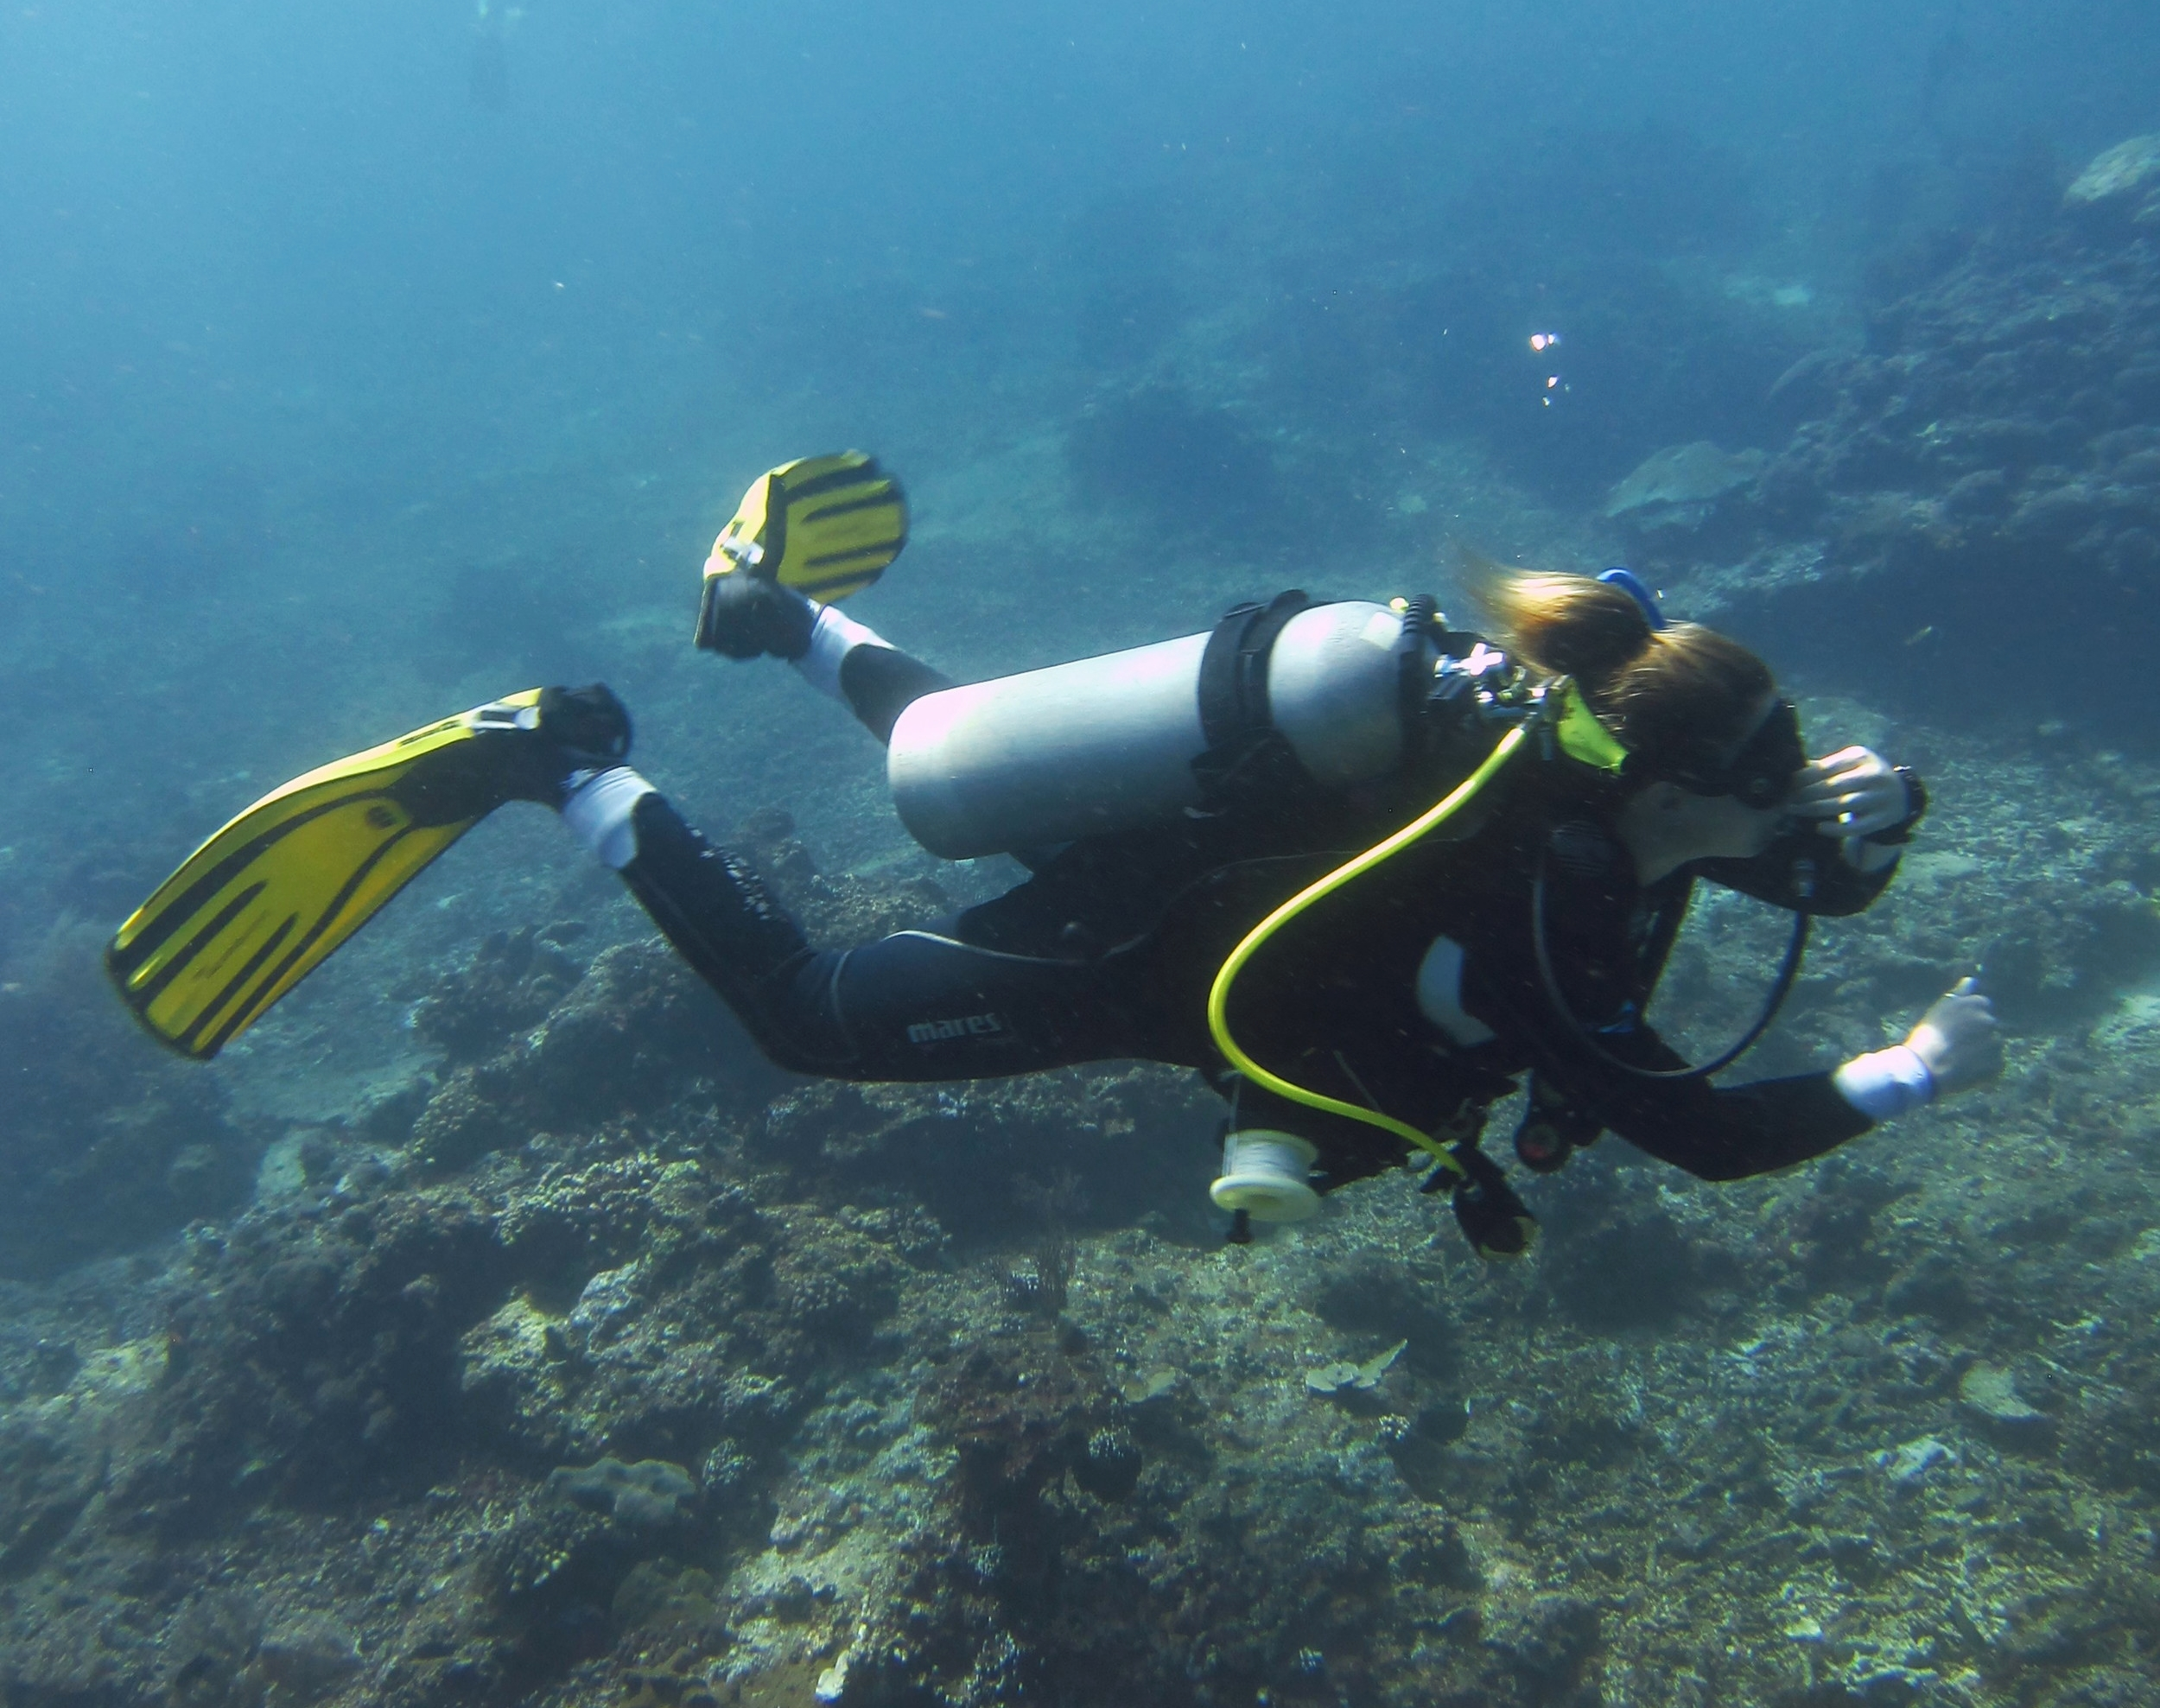 Equalizing often throughout your dive will help to prevent discomfort